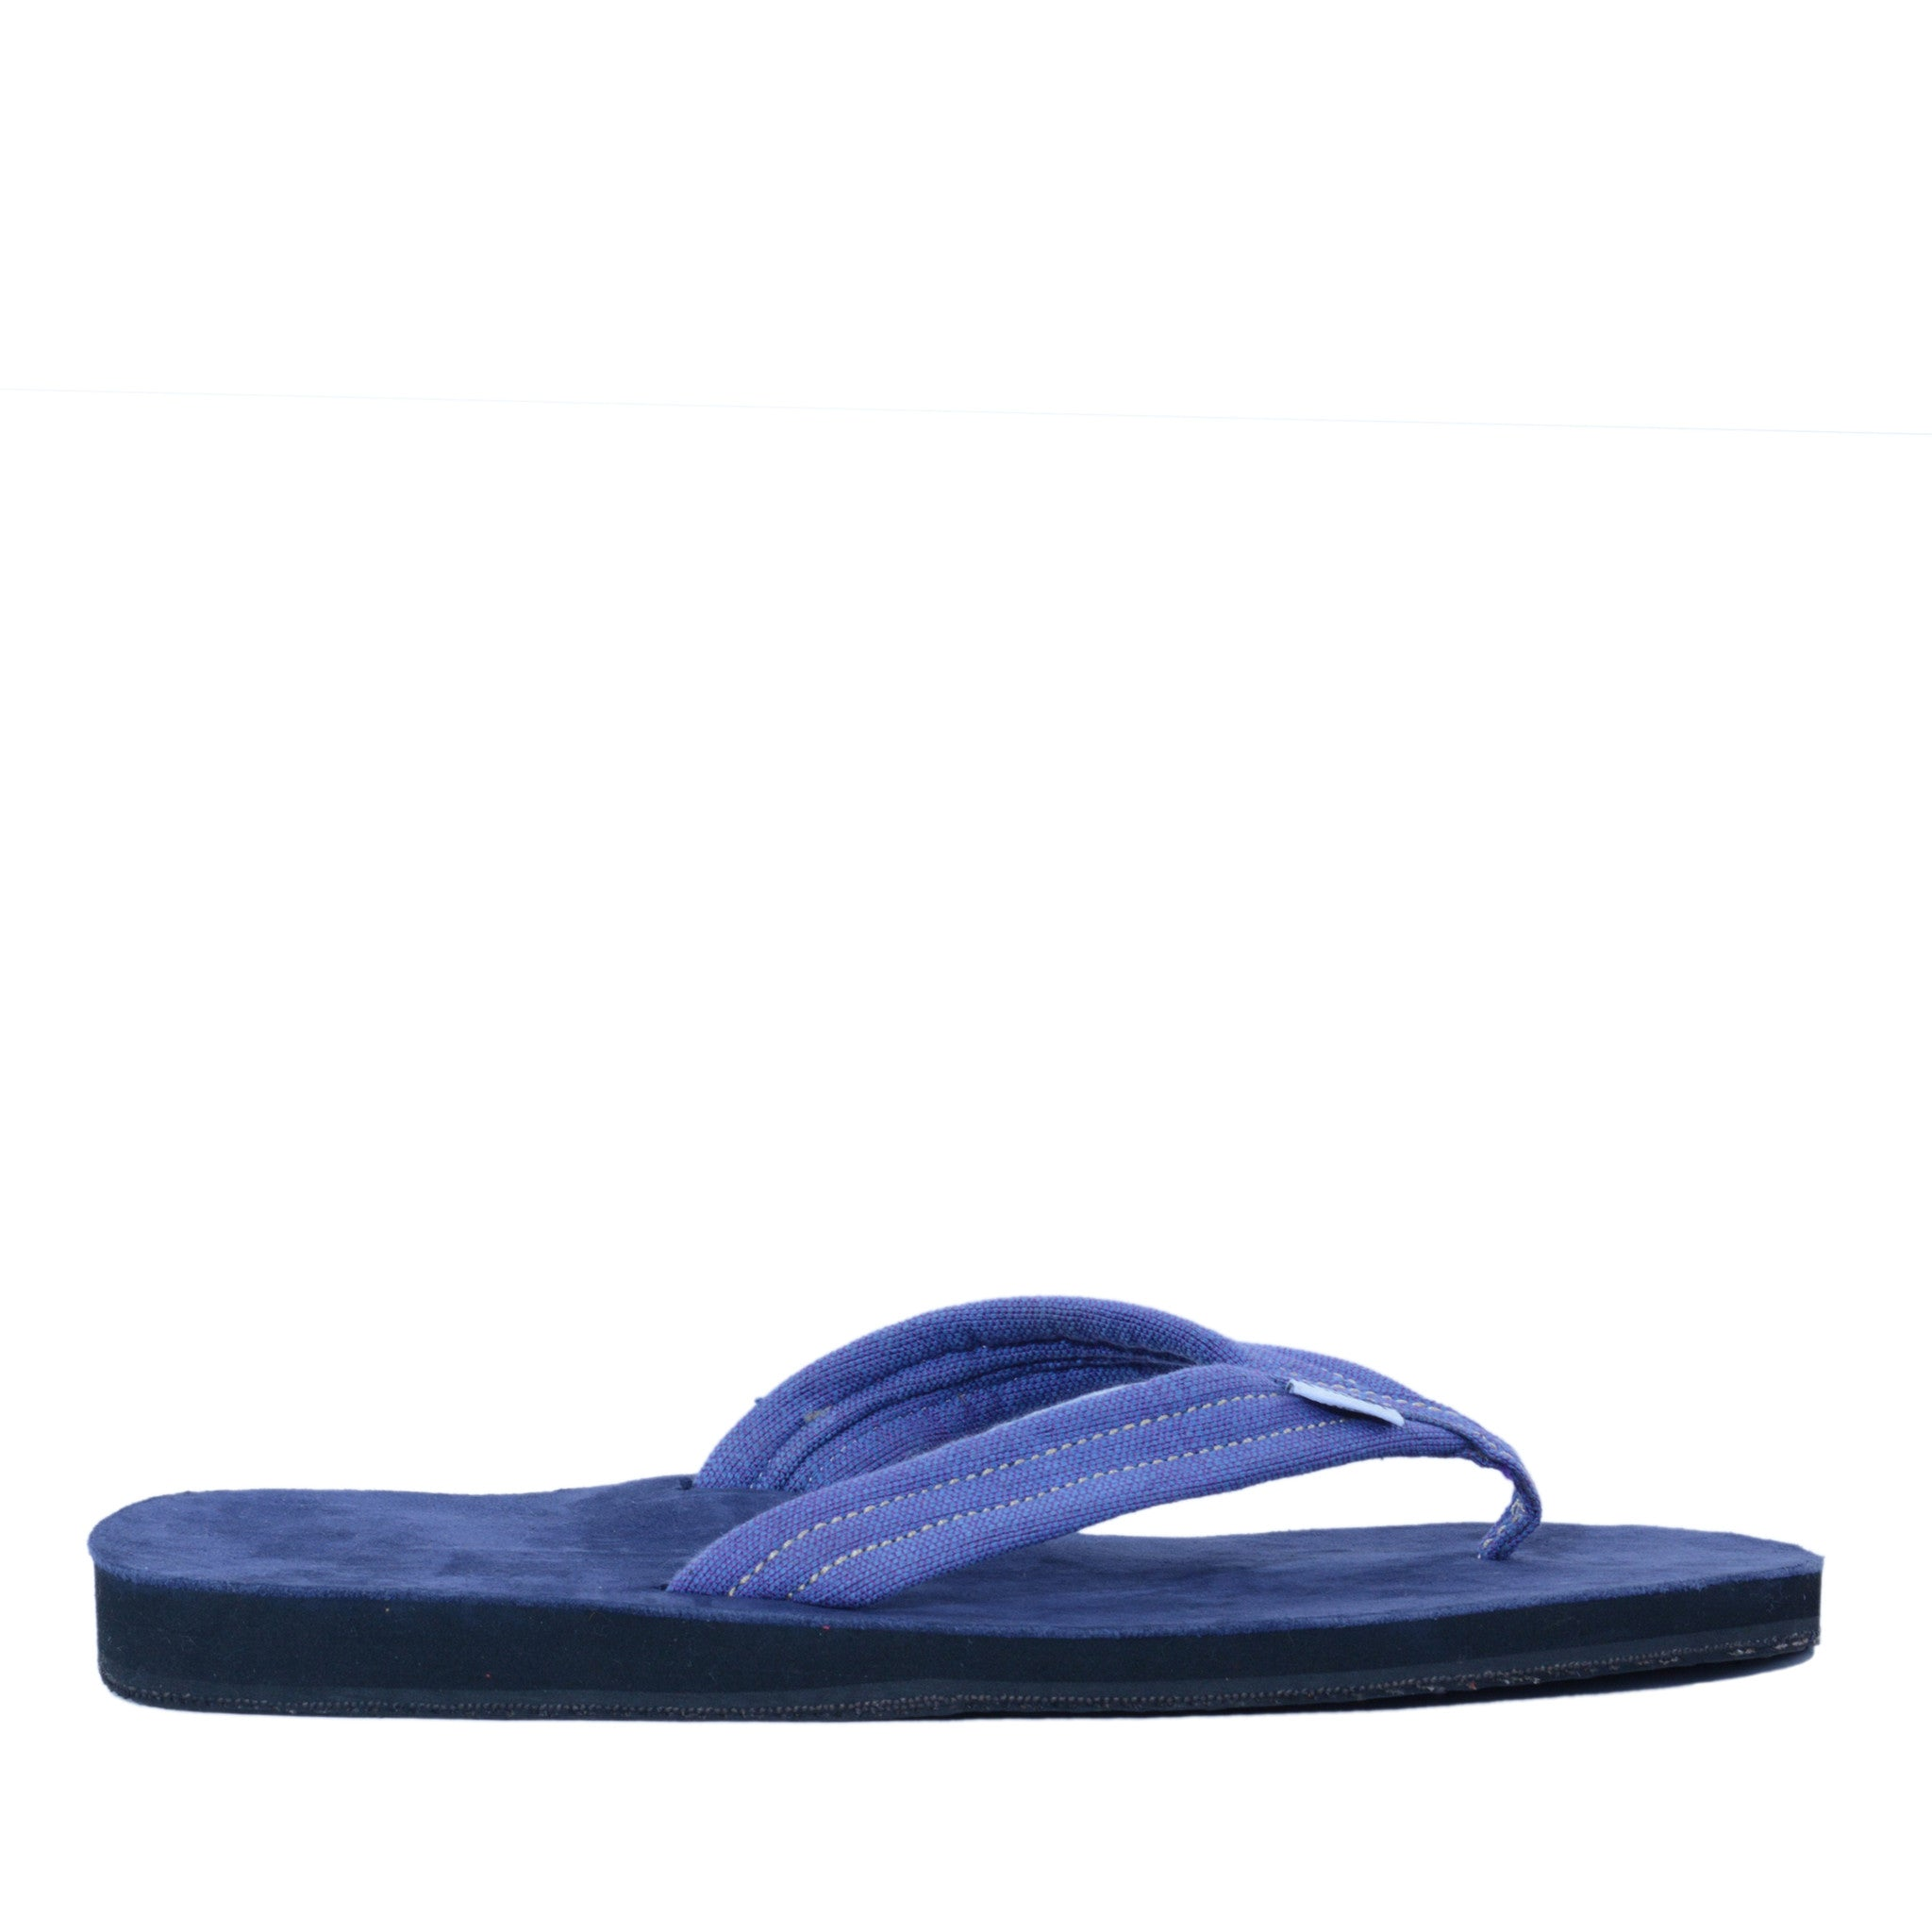 solerebels sky blue nuDEAL mSh 2 Sandals